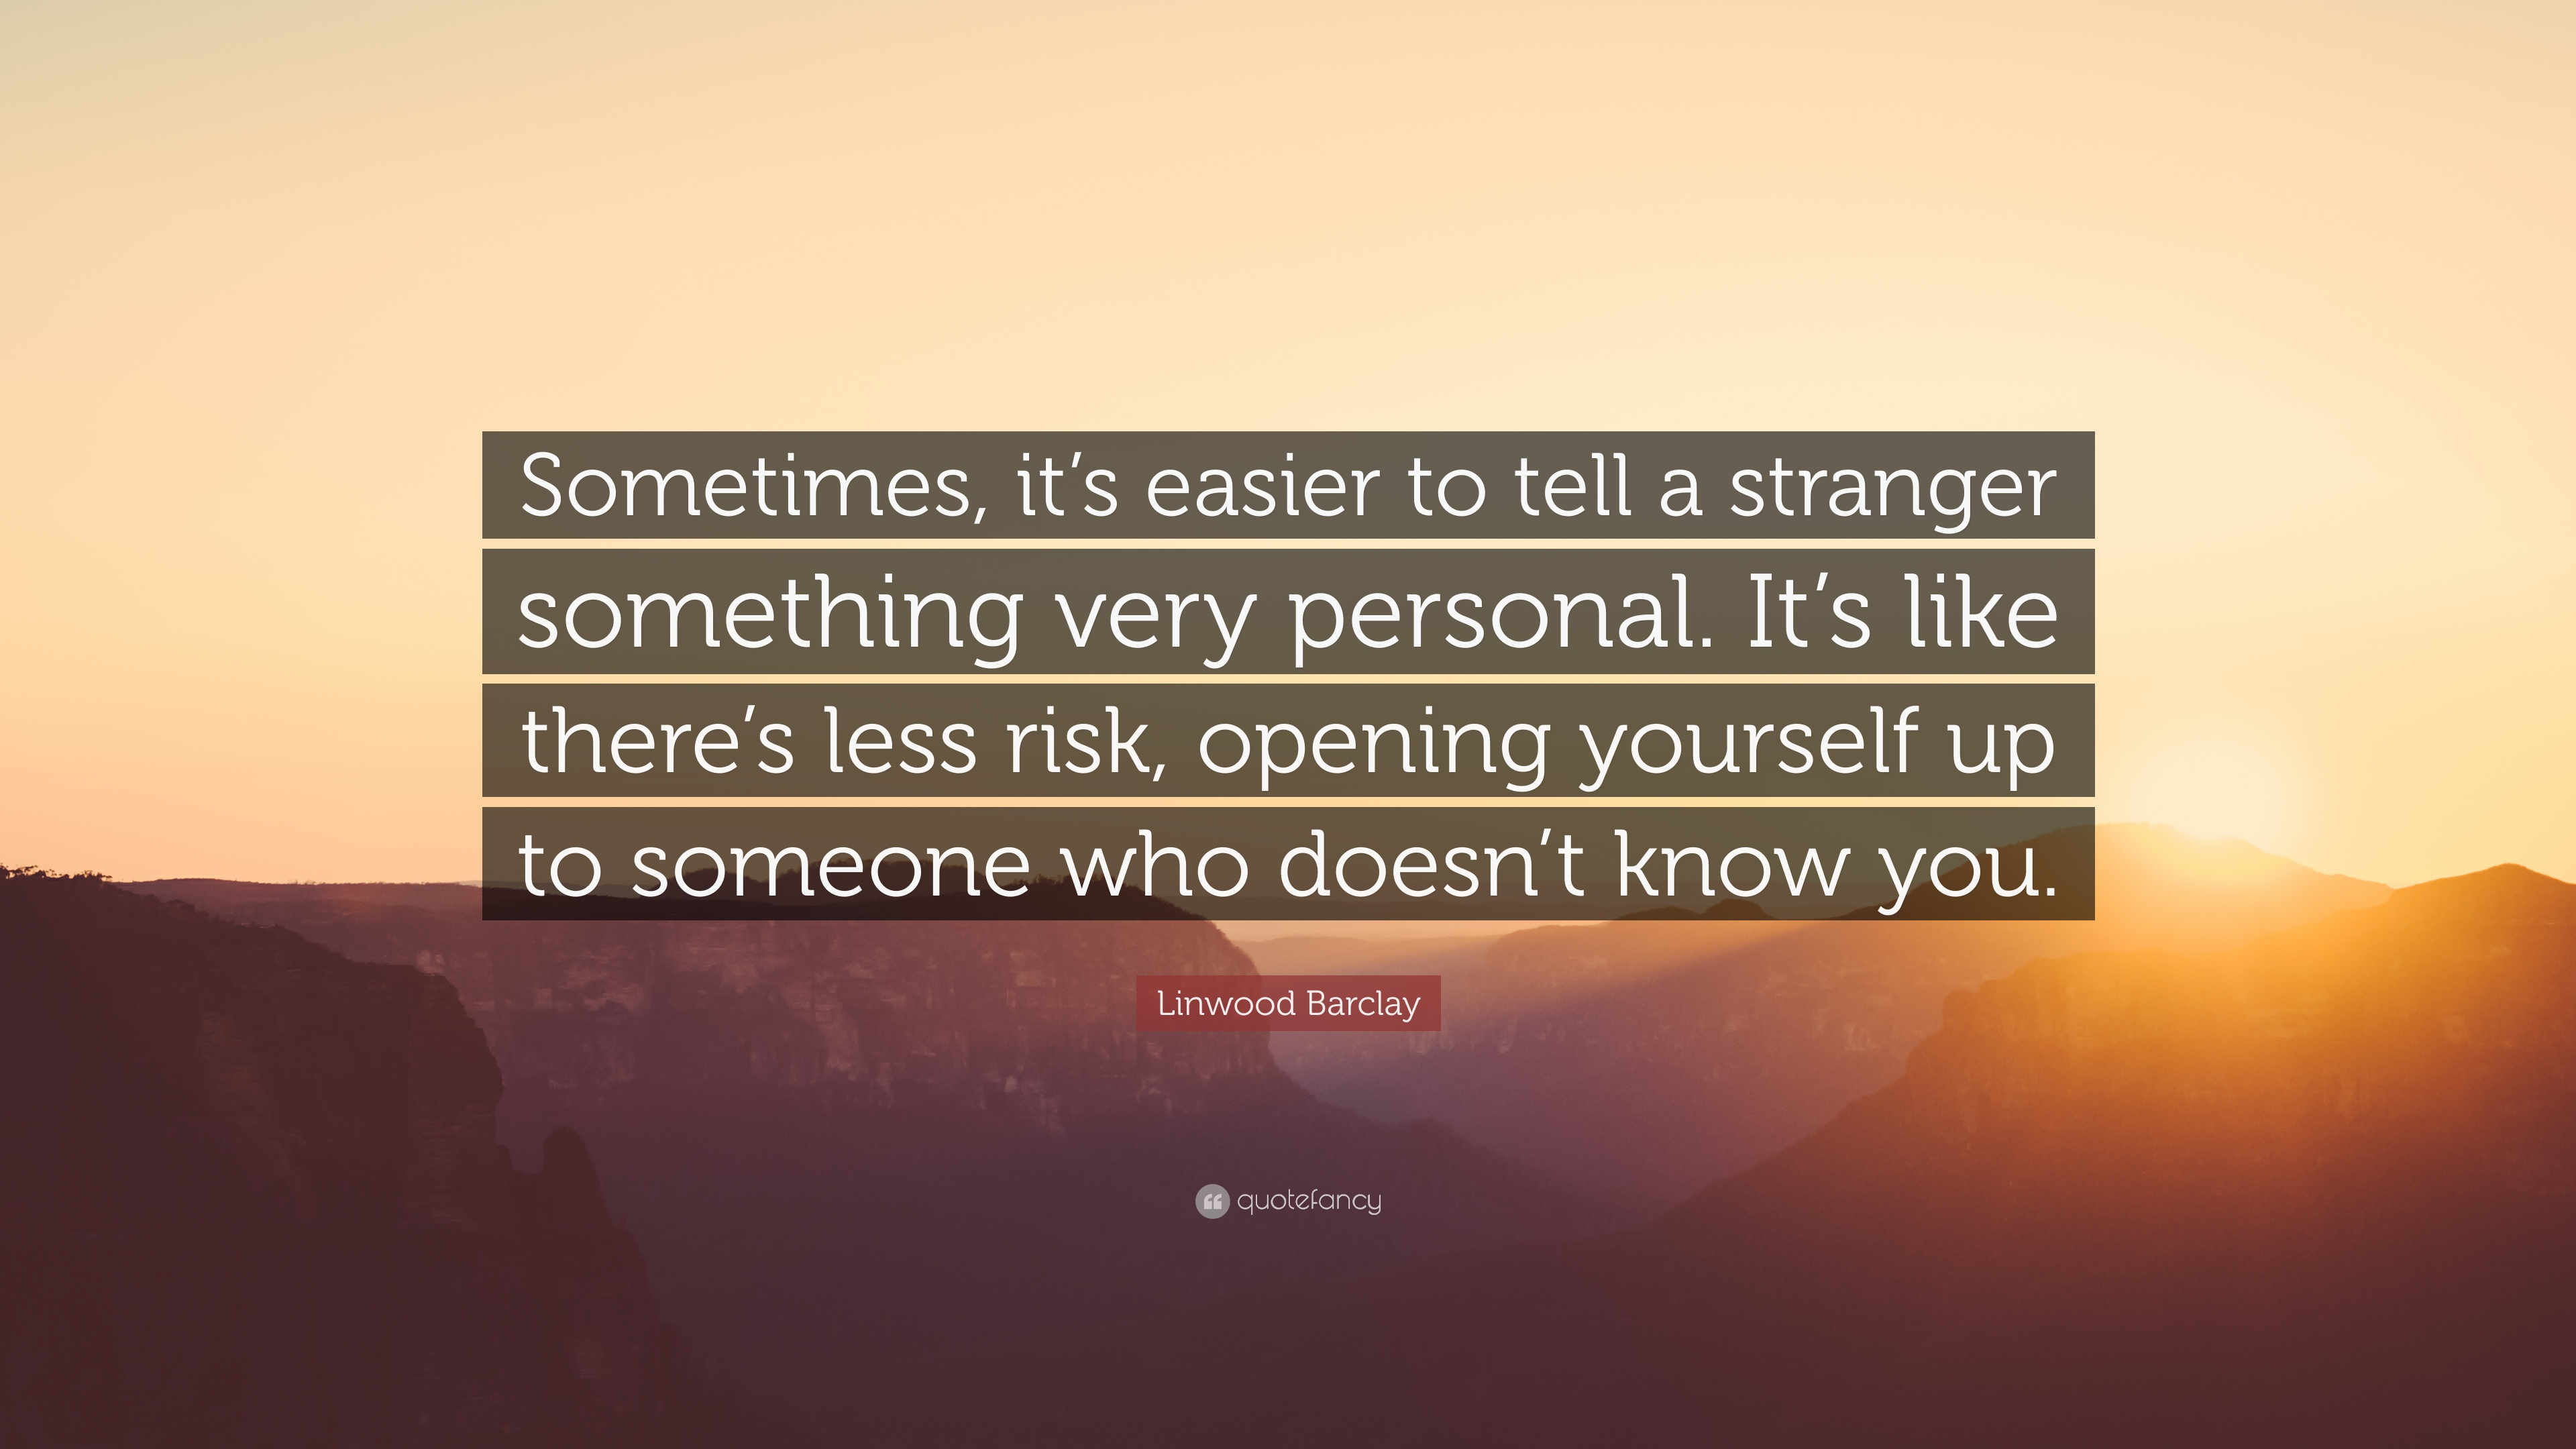 linwood barclay quote sometimes it s easier to tell a stranger linwood barclay quote sometimes it s easier to tell a stranger something very personal